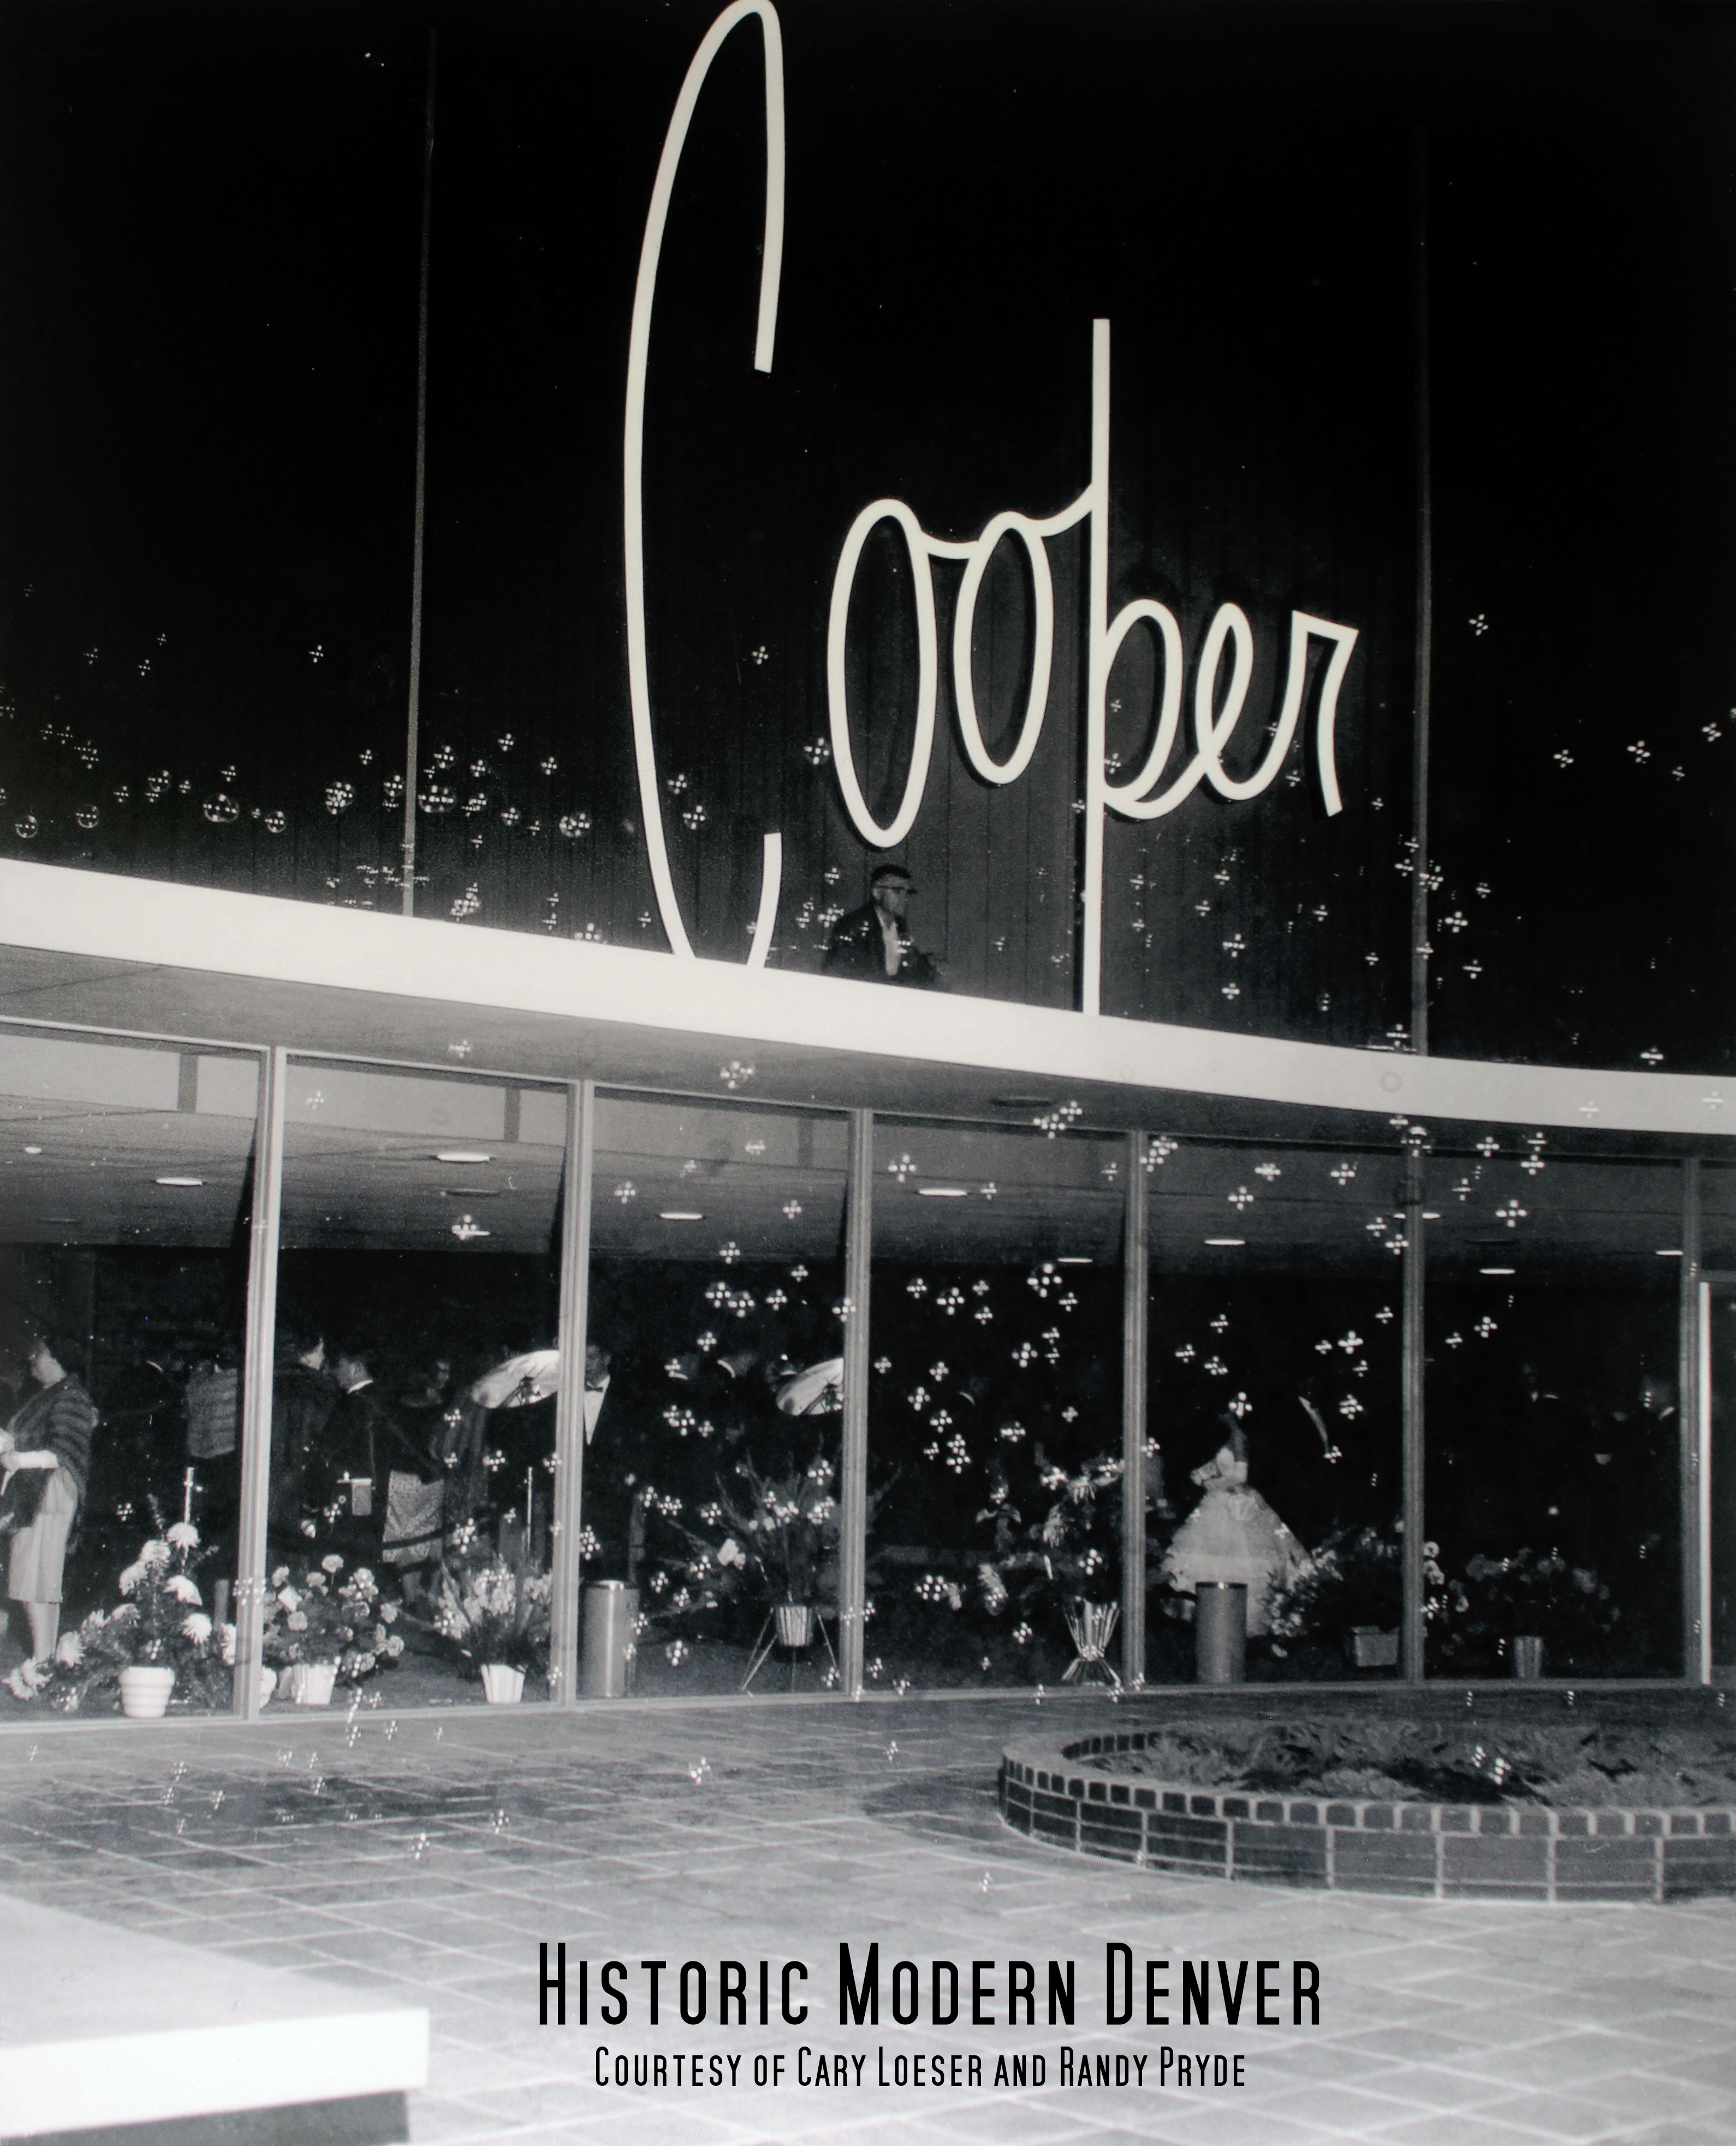 The cooper theatre of tomorrow historic modern denver for our premiere story on this historic modern denver website we are focusing on denver architect richard crowther crowther made enormous contributions to malvernweather Image collections